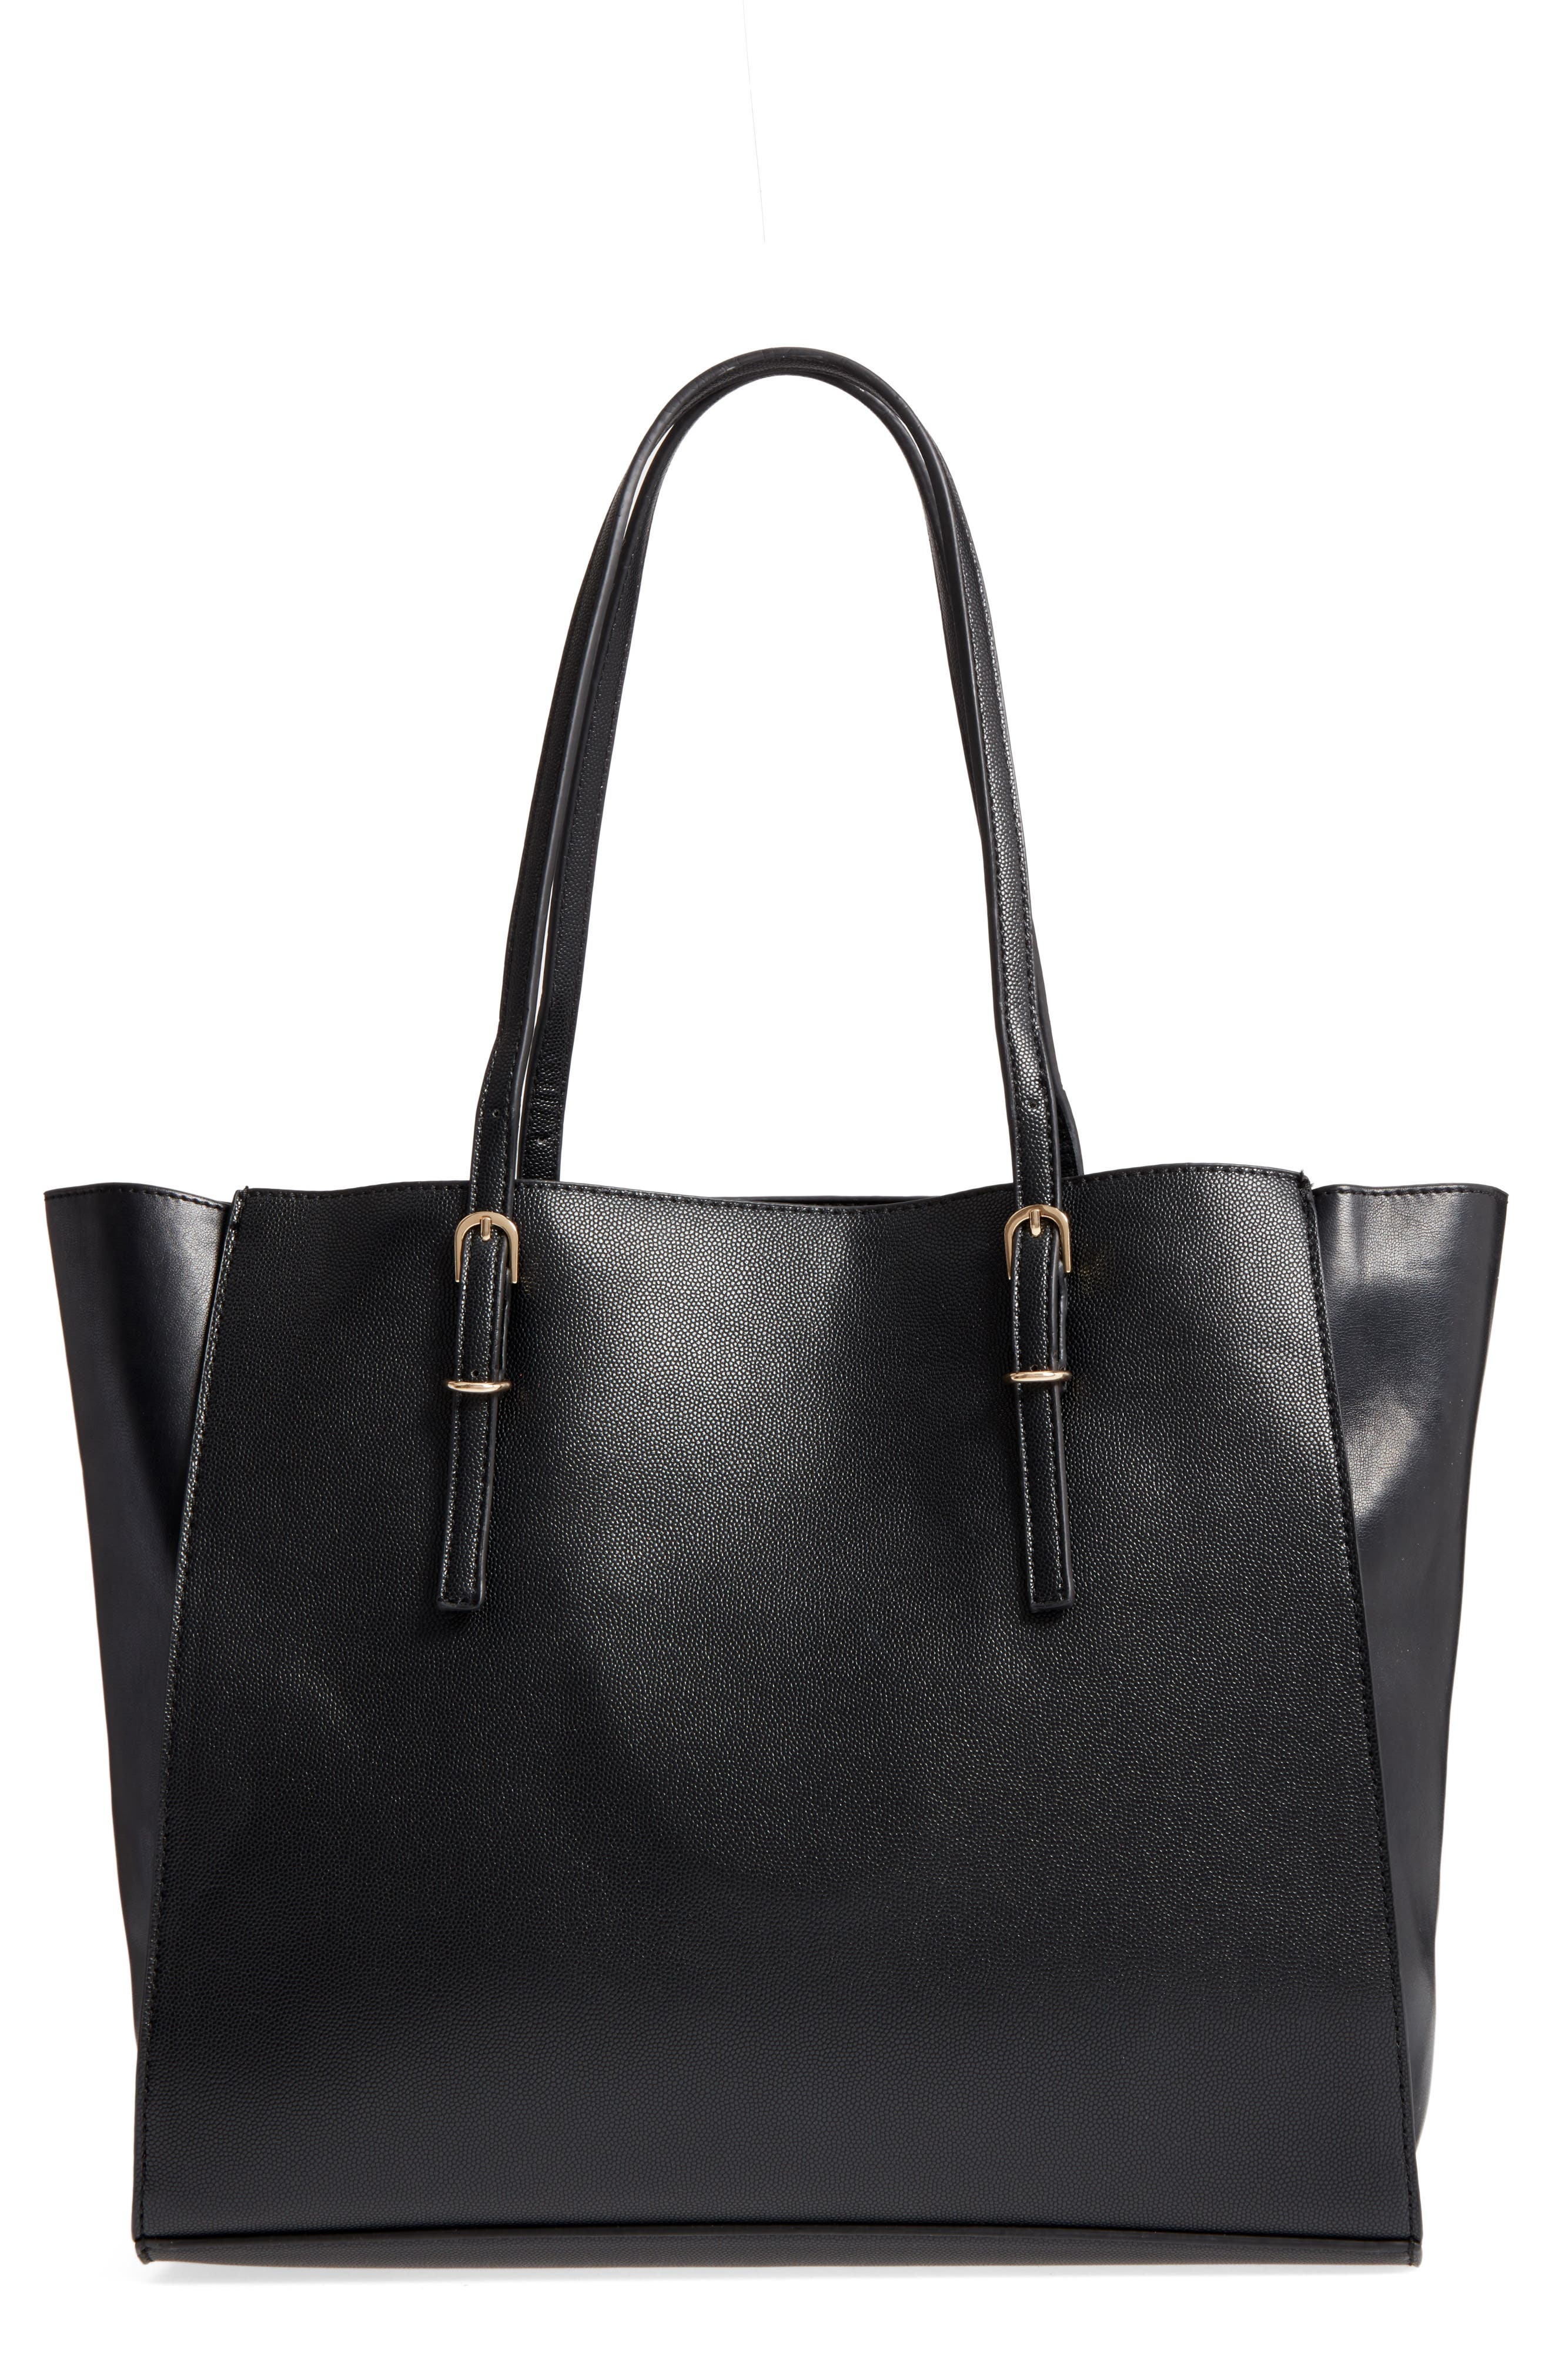 Main Image - Street Level Faux Leather Buckle Tote